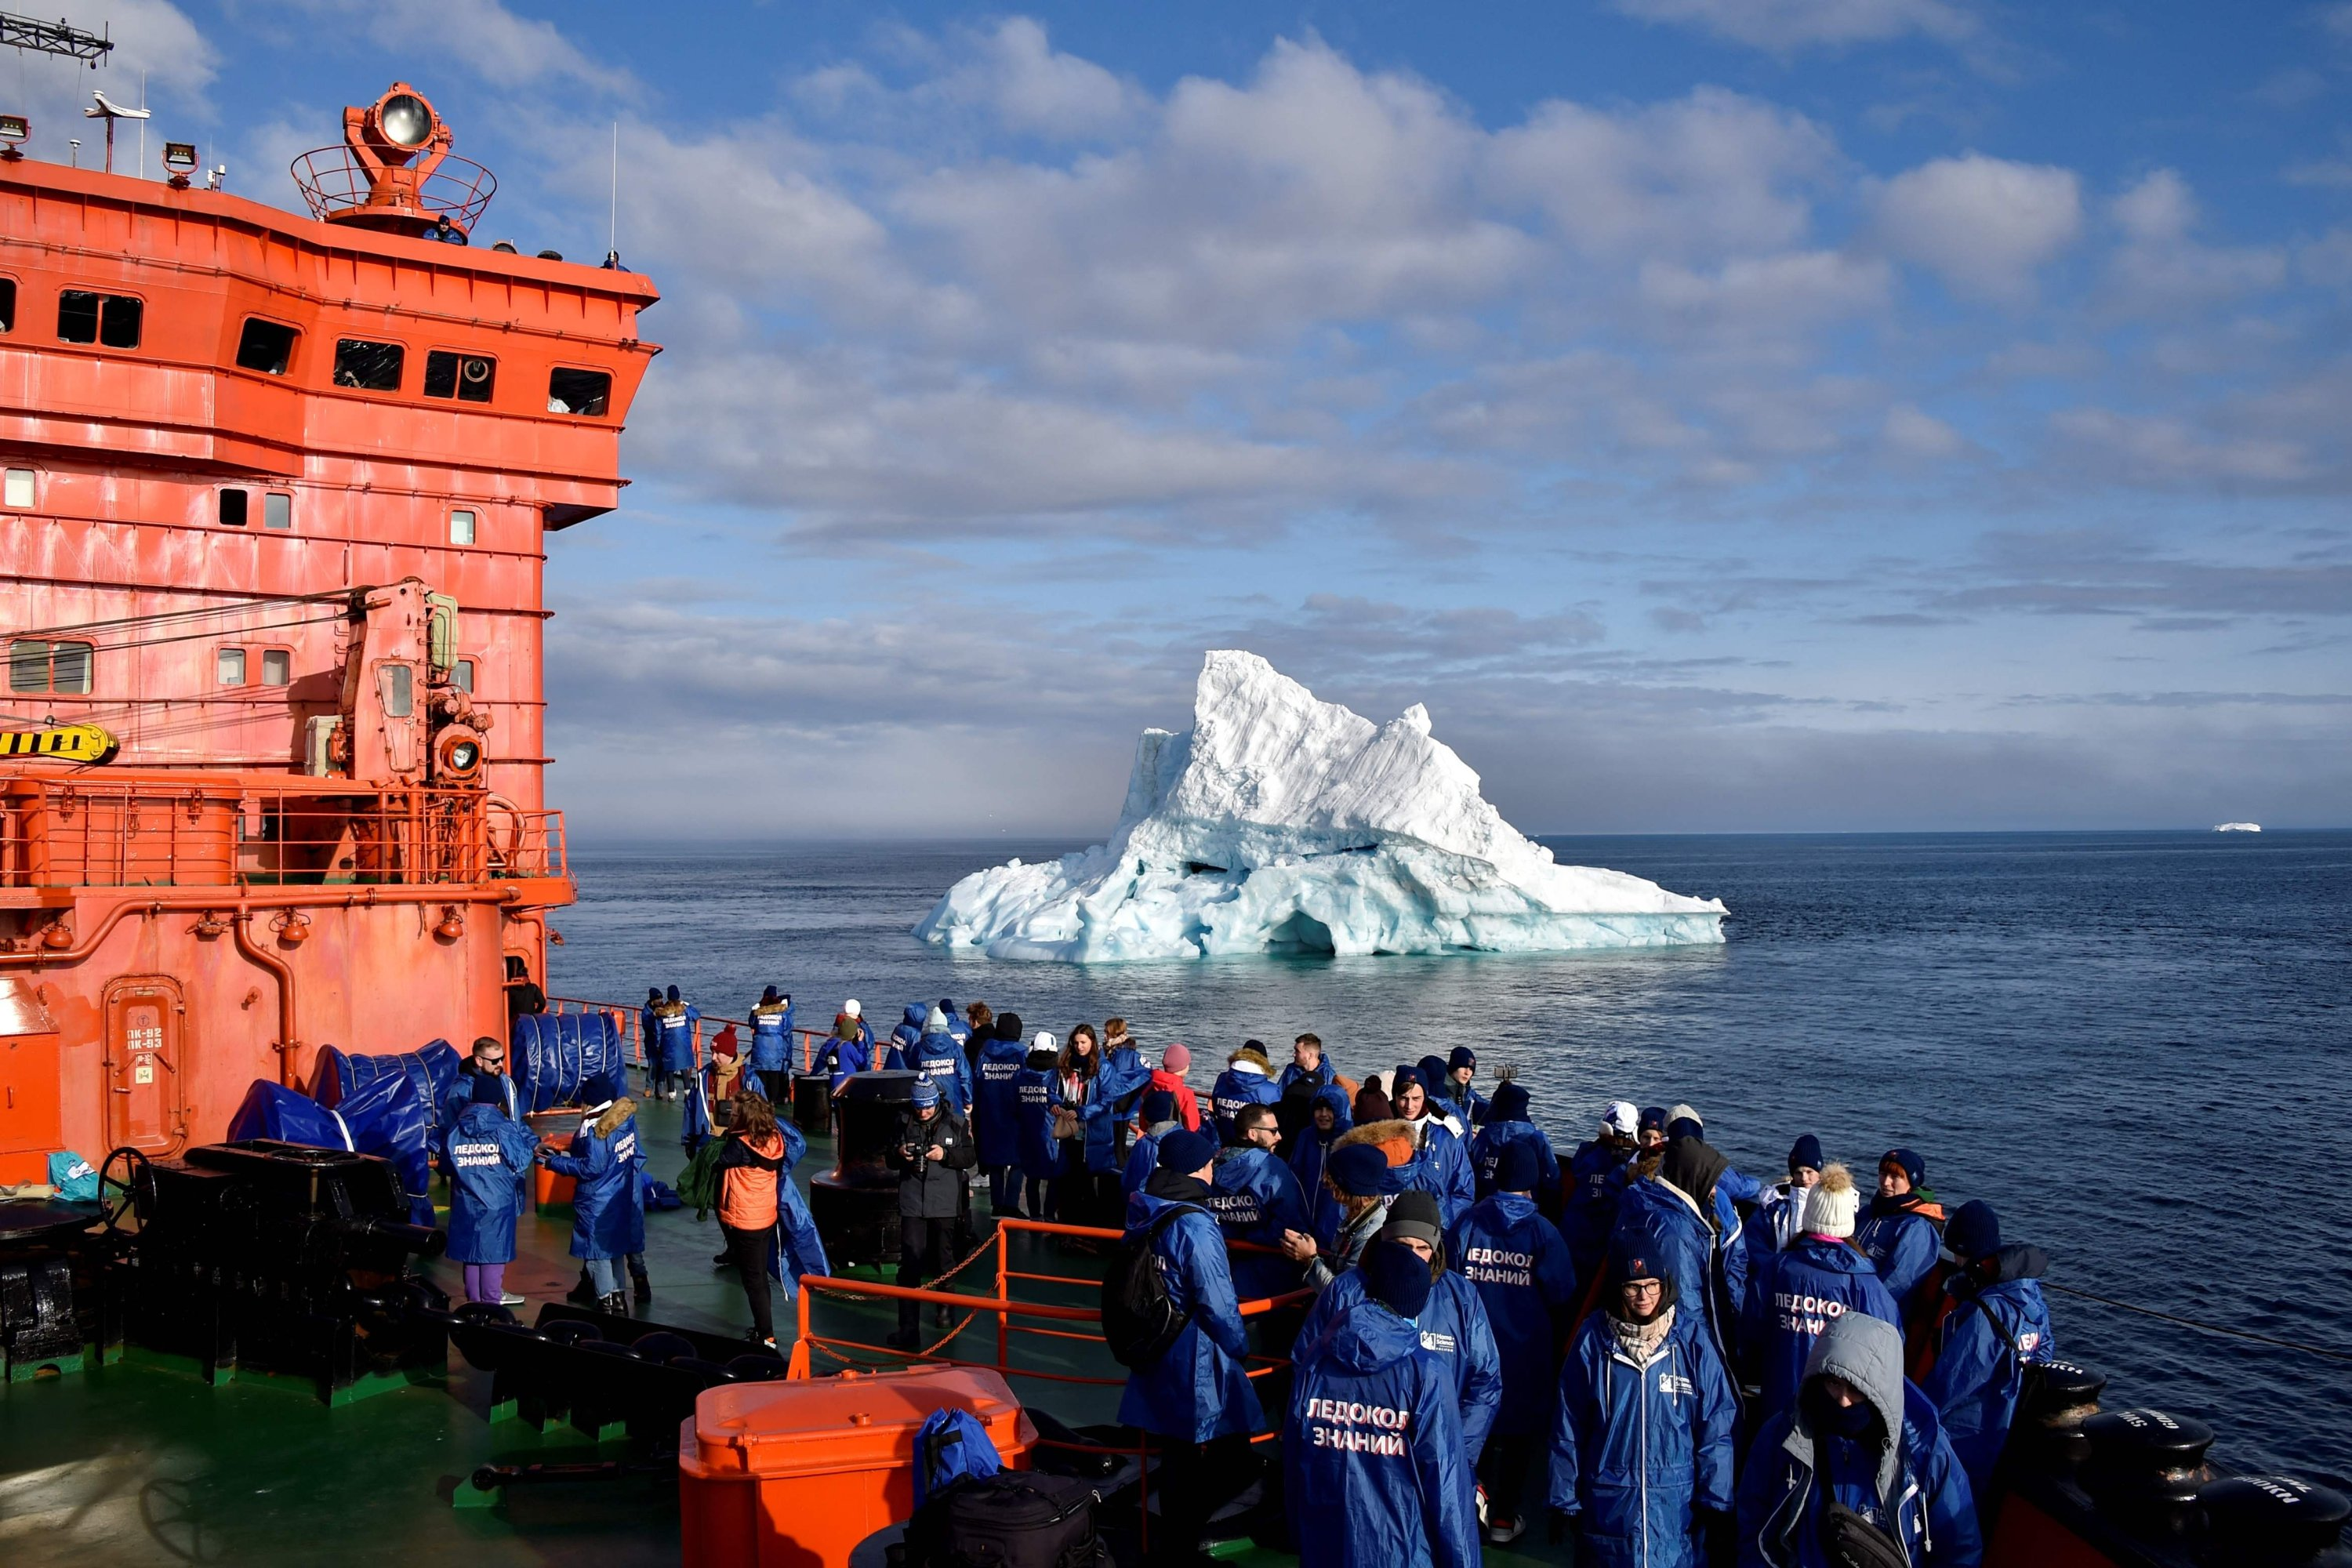 Russian teenagers who won a contest to travel aboard the Russian nuclear-powered icebreaker '50 Years of Victory' look at an iceberg in the Arctic Ocean from the deck of the 160-meter (525-foot) ship on Aug. 20, 2021. (AFP Photo)